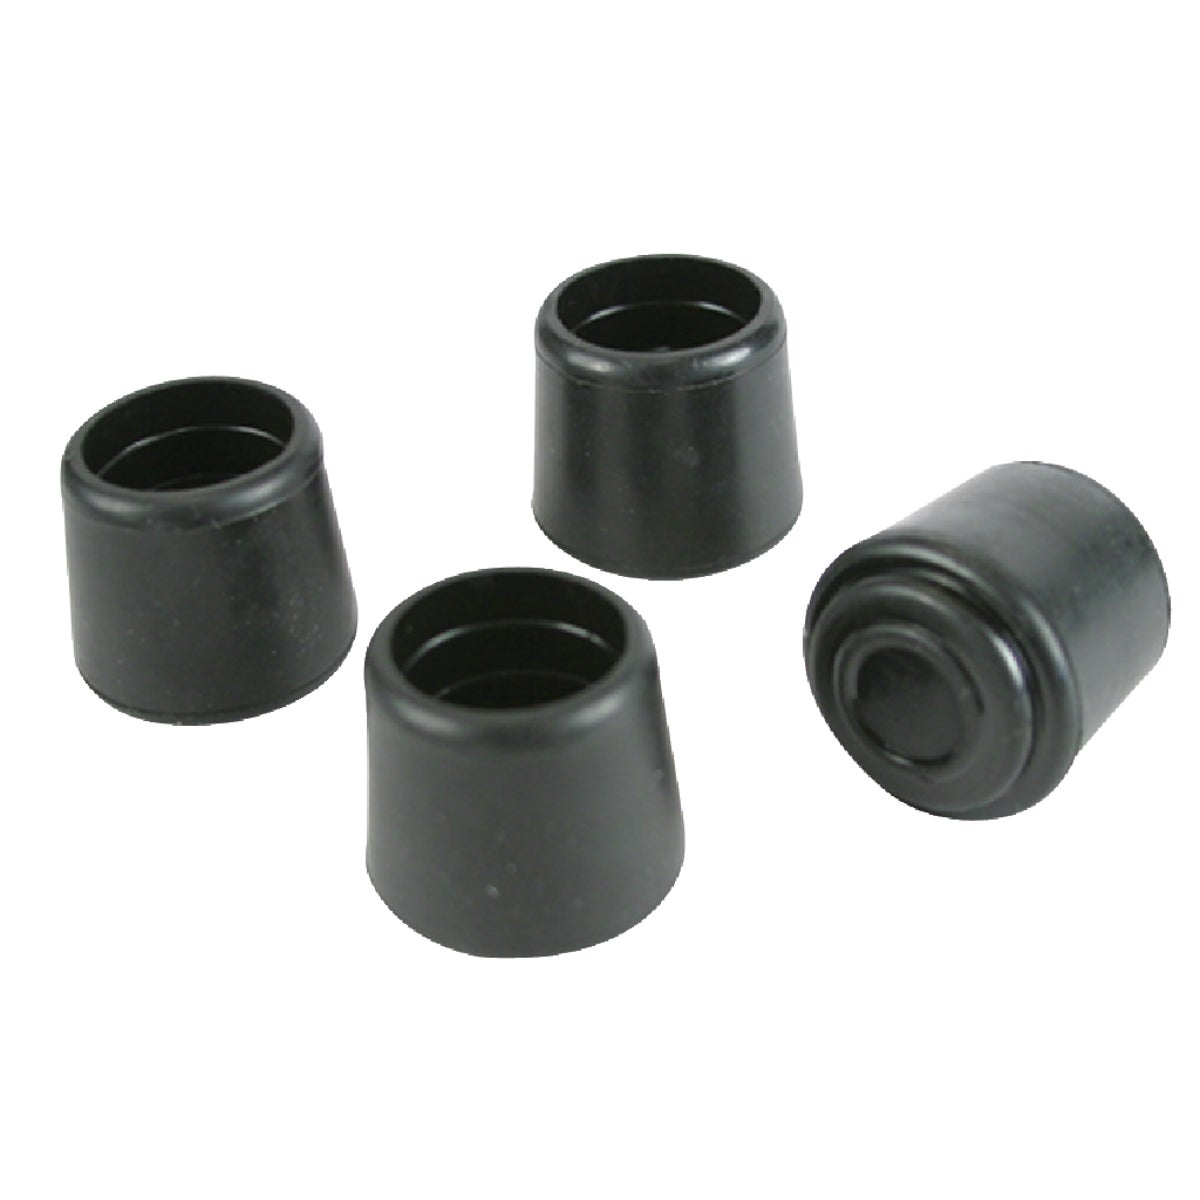 "1"" BLK RUBBER TIPS"